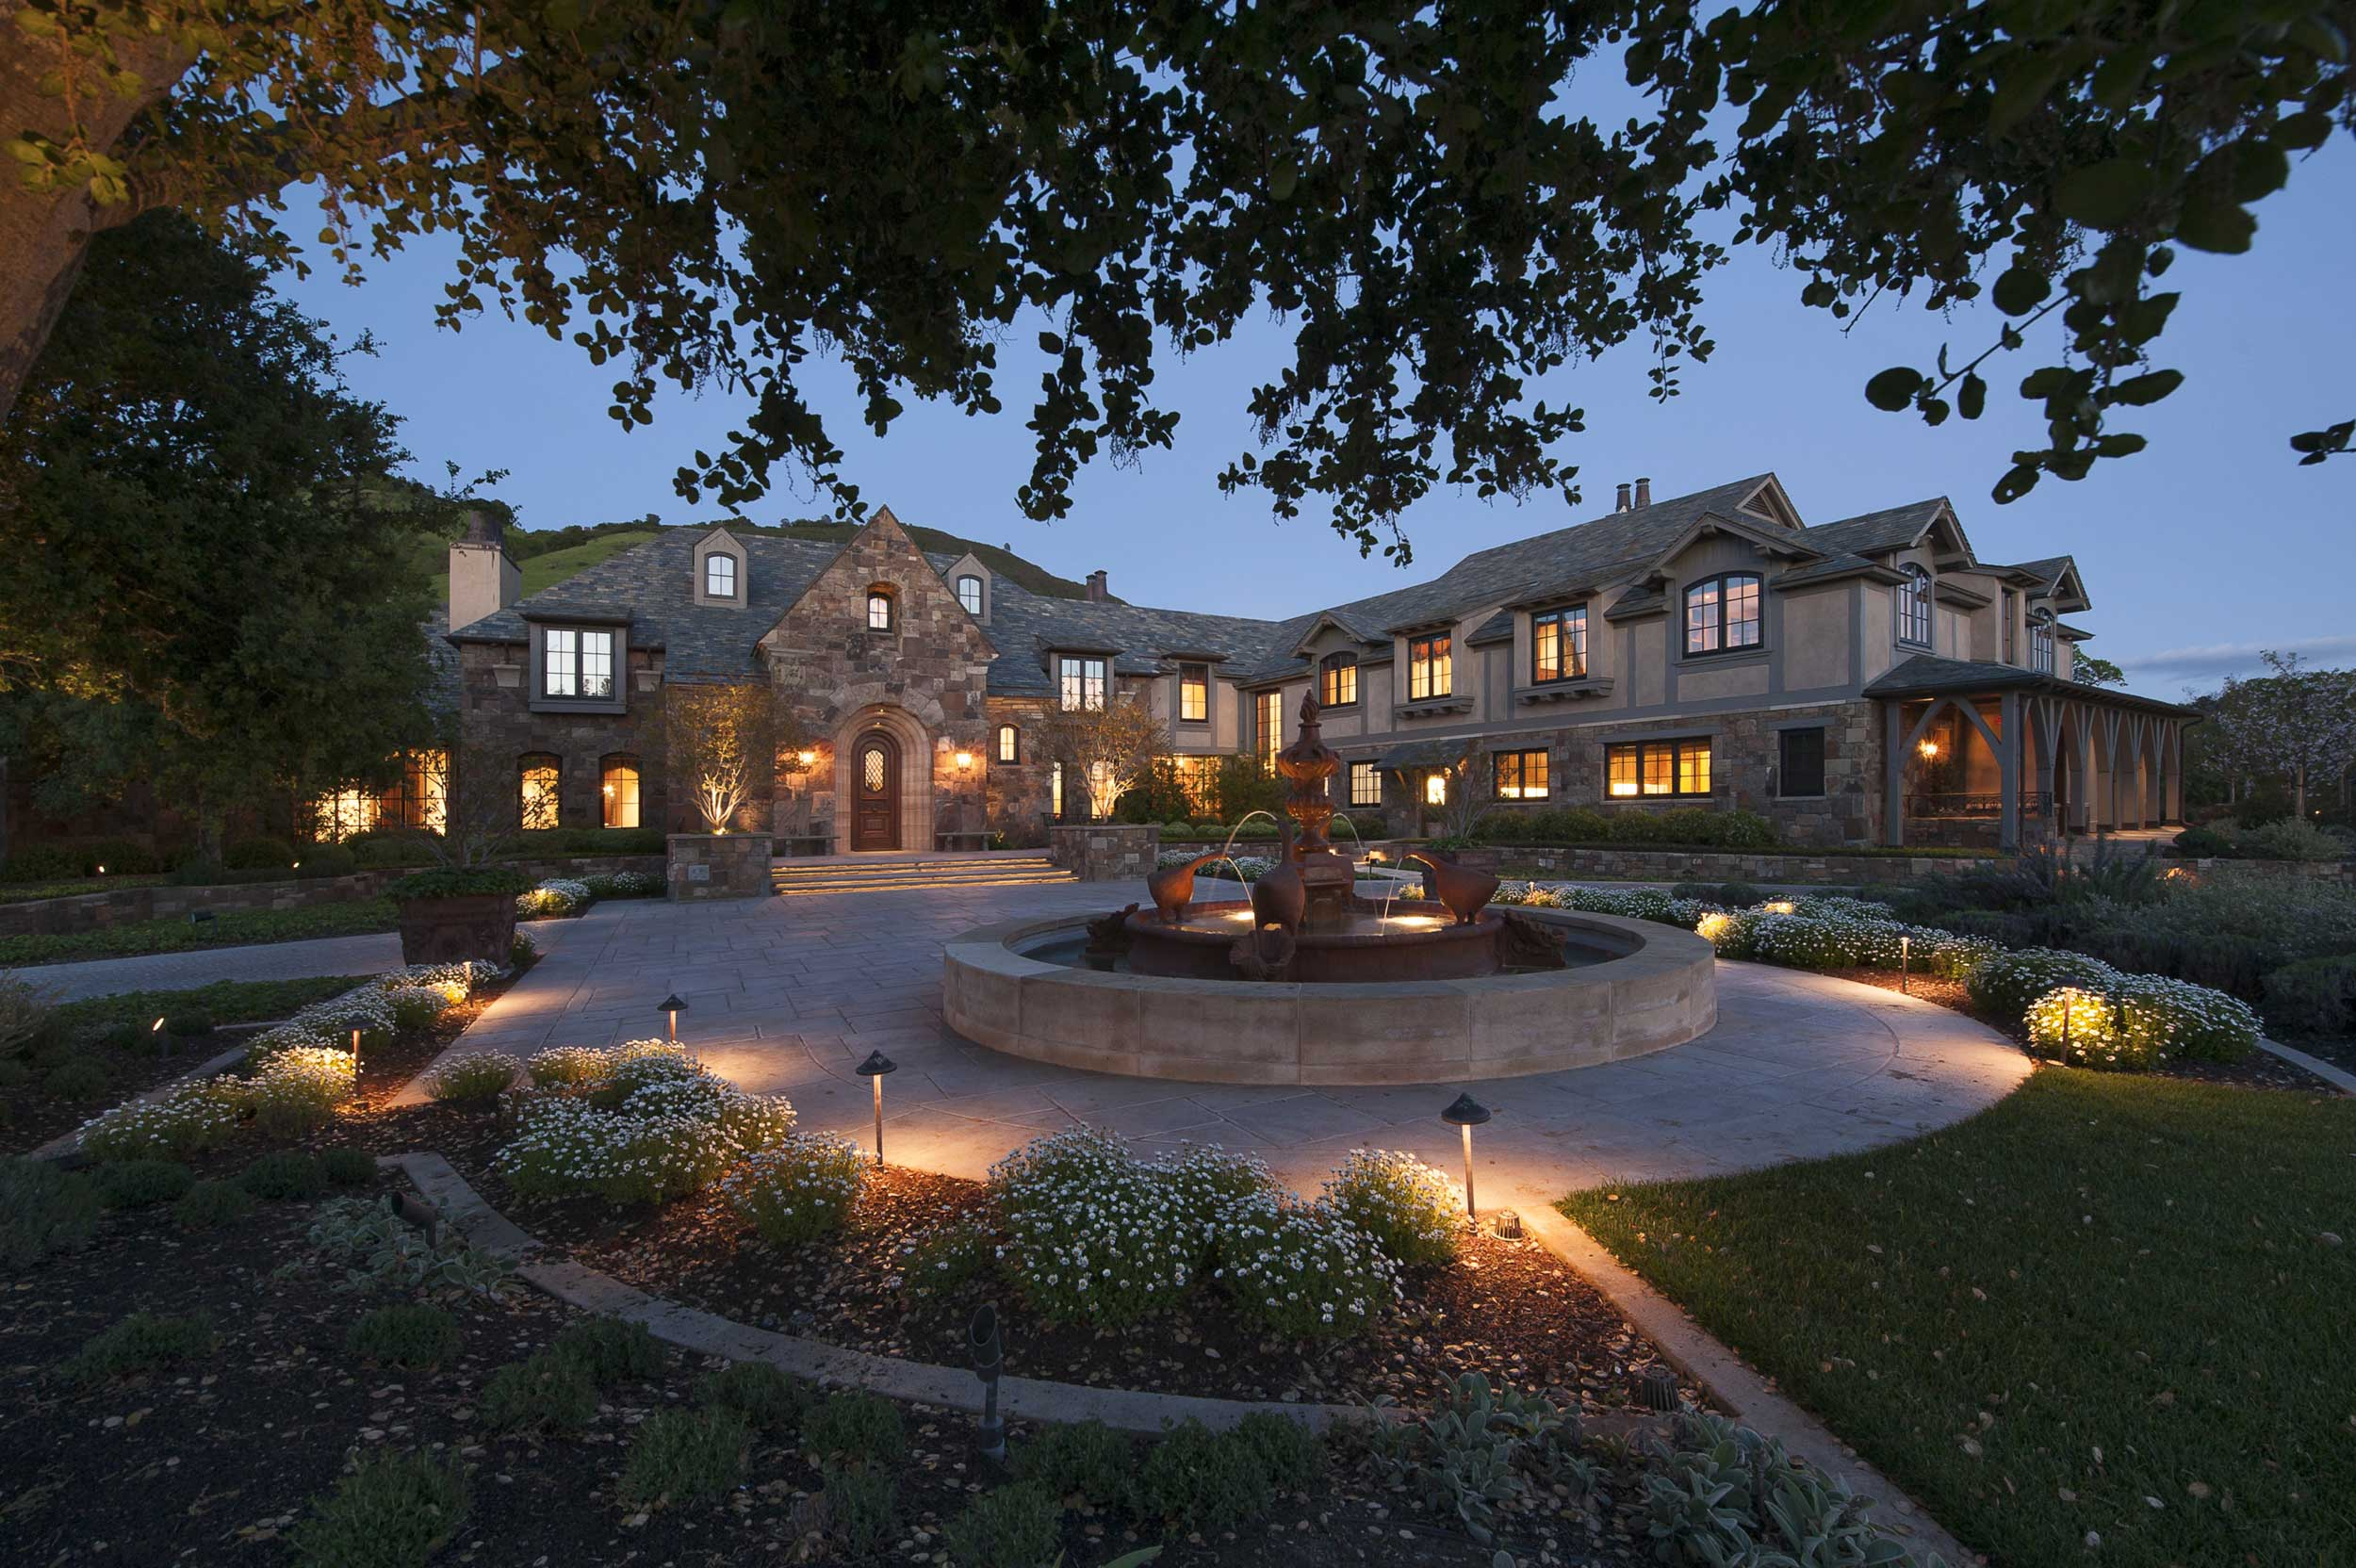 The San Francisco Bay area's finest estate, Fieldhaven is a harmonious blend of Old World grandeur and modern sophistication, set within an incomparable natural landscape.